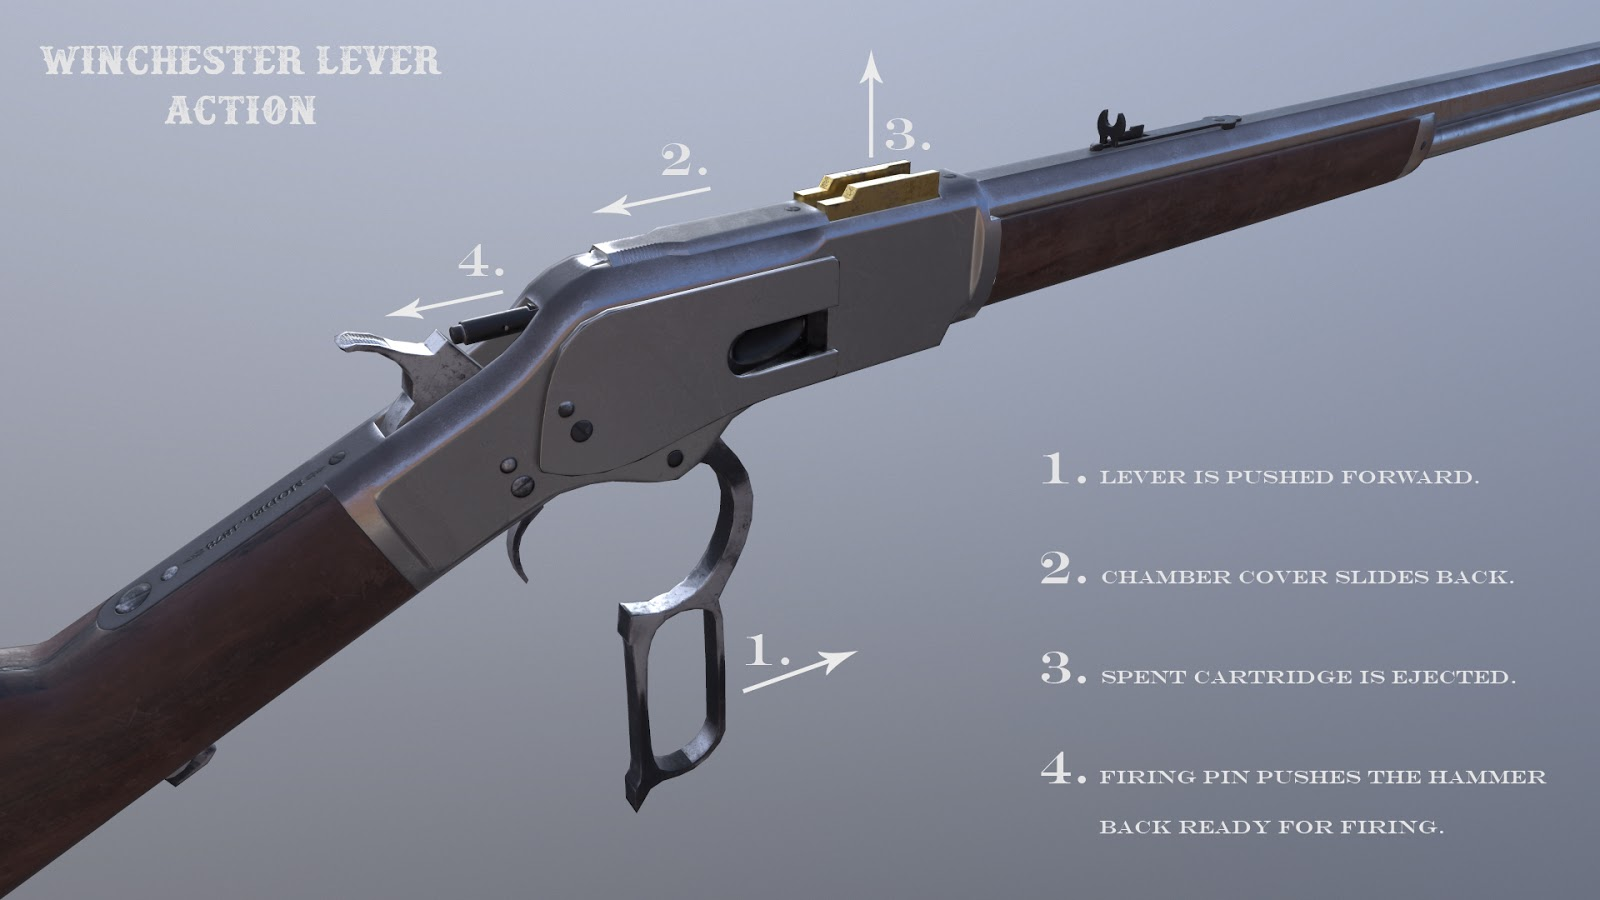 Lever Action Animation : The itearooms